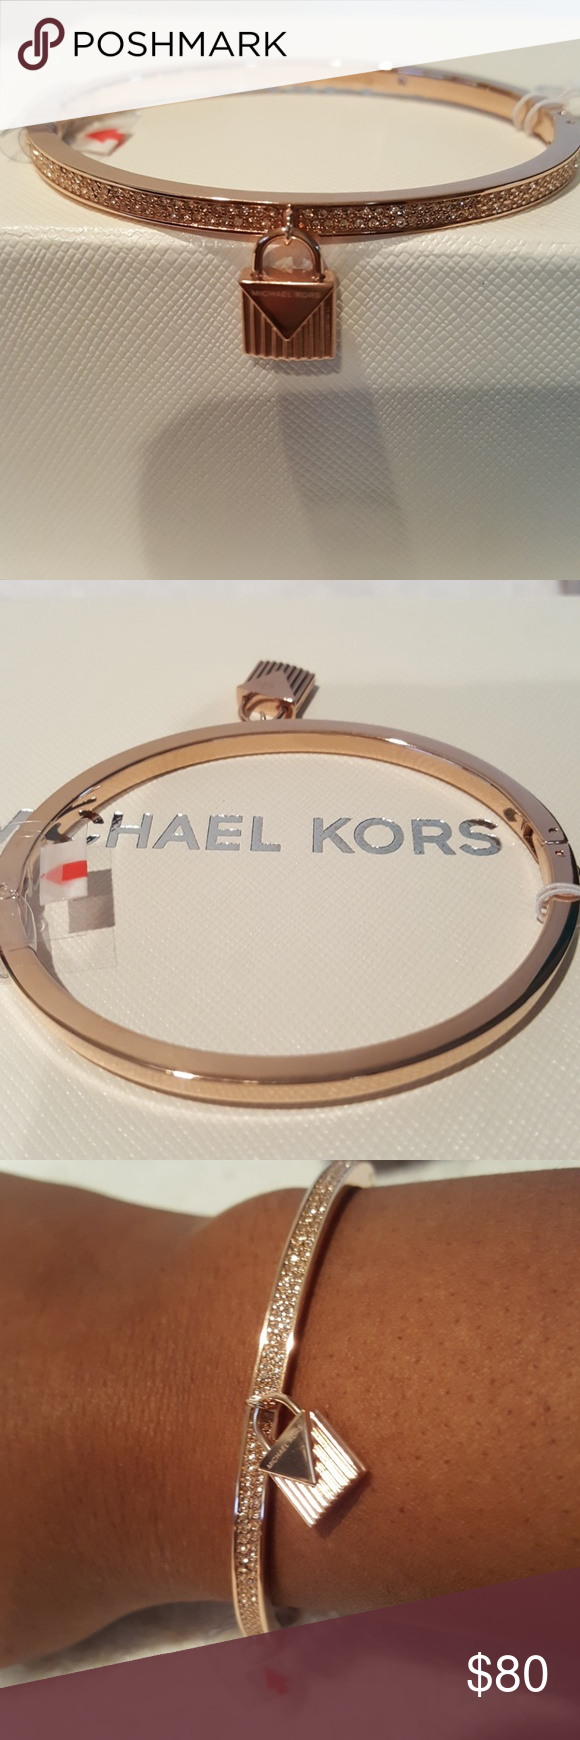 b8cb9ecd1a9 New Michael Kors Rose Stainless Steel Bracelet New...never worn Rose gold  tone stainless steel bracelet with pave pendant and glass